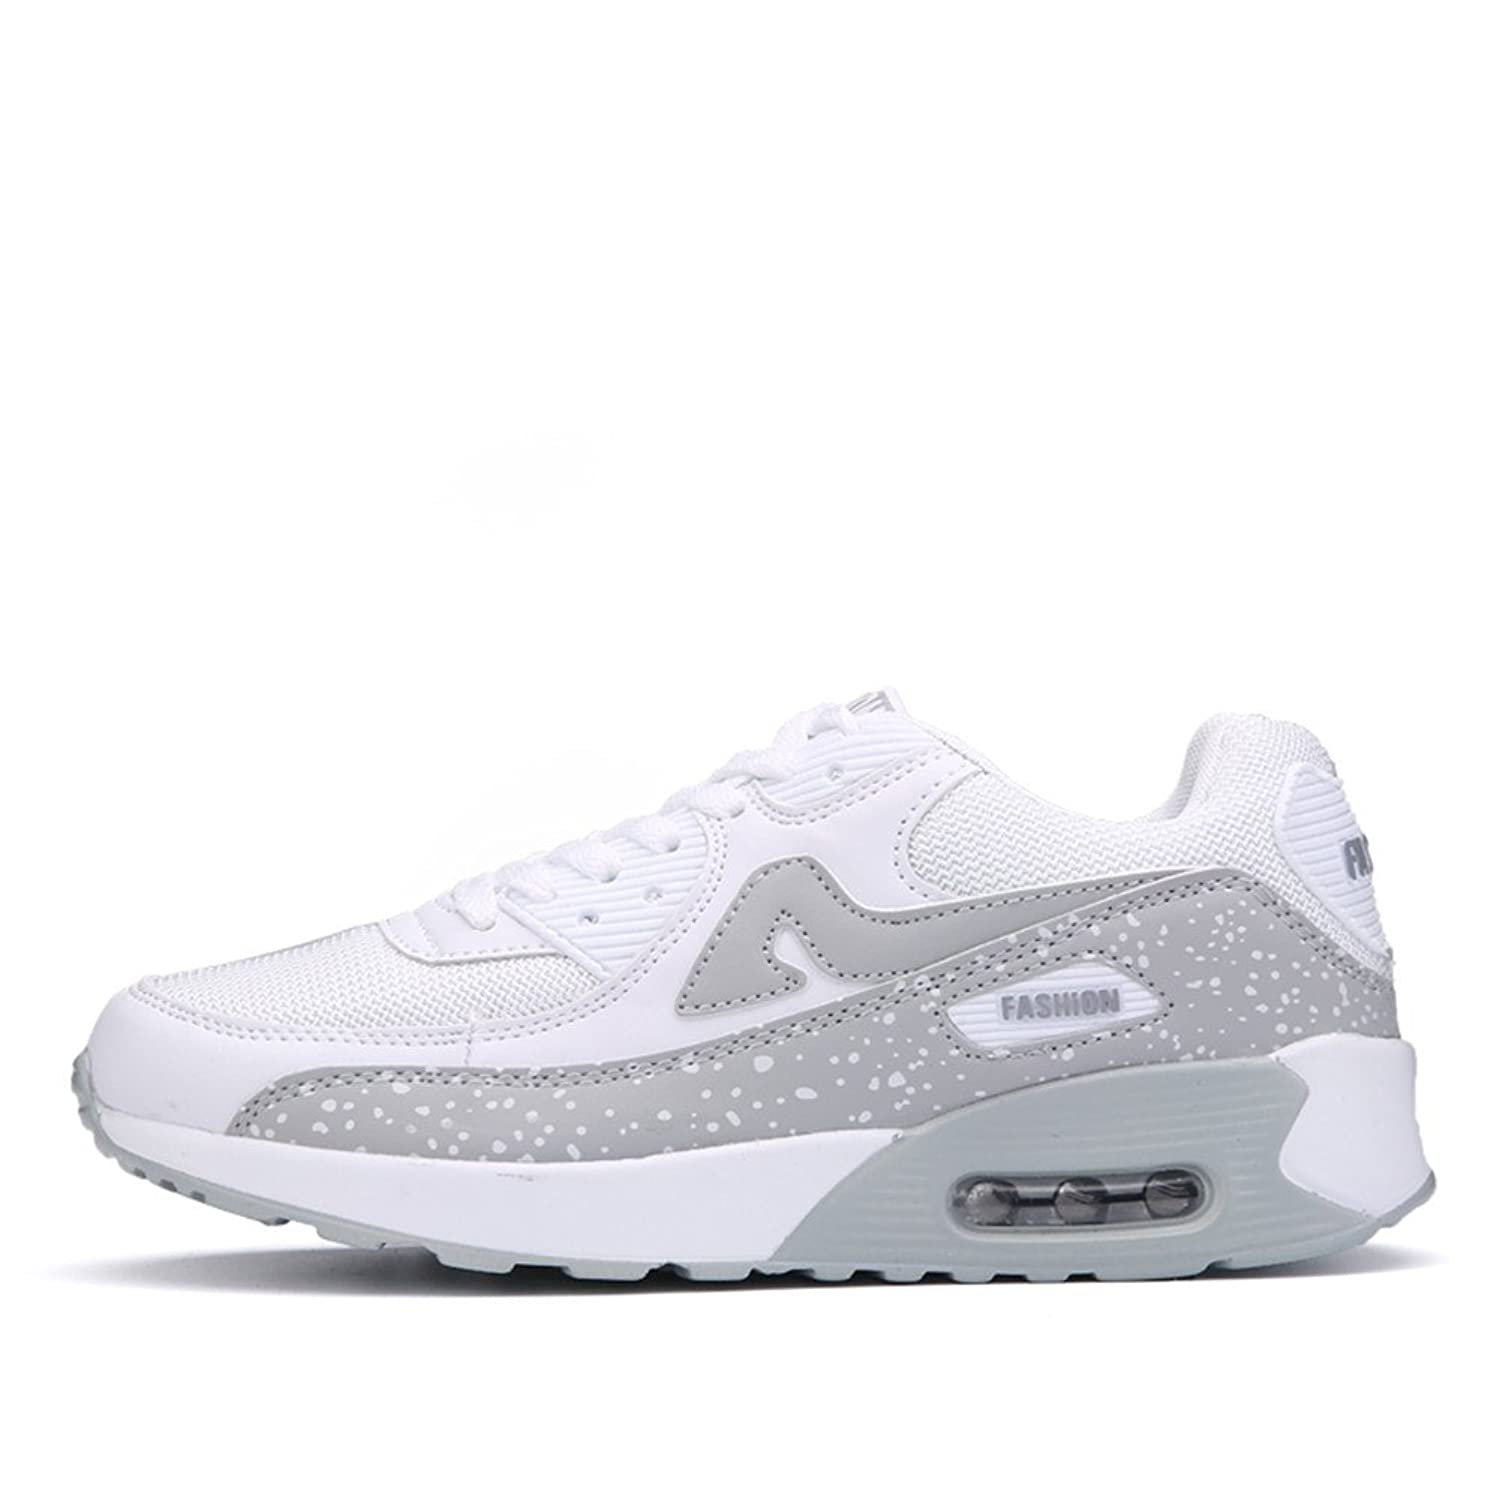 Running Shoes Breathable Lightweight Fashion Walking Casual Sneaker for Men's Women's